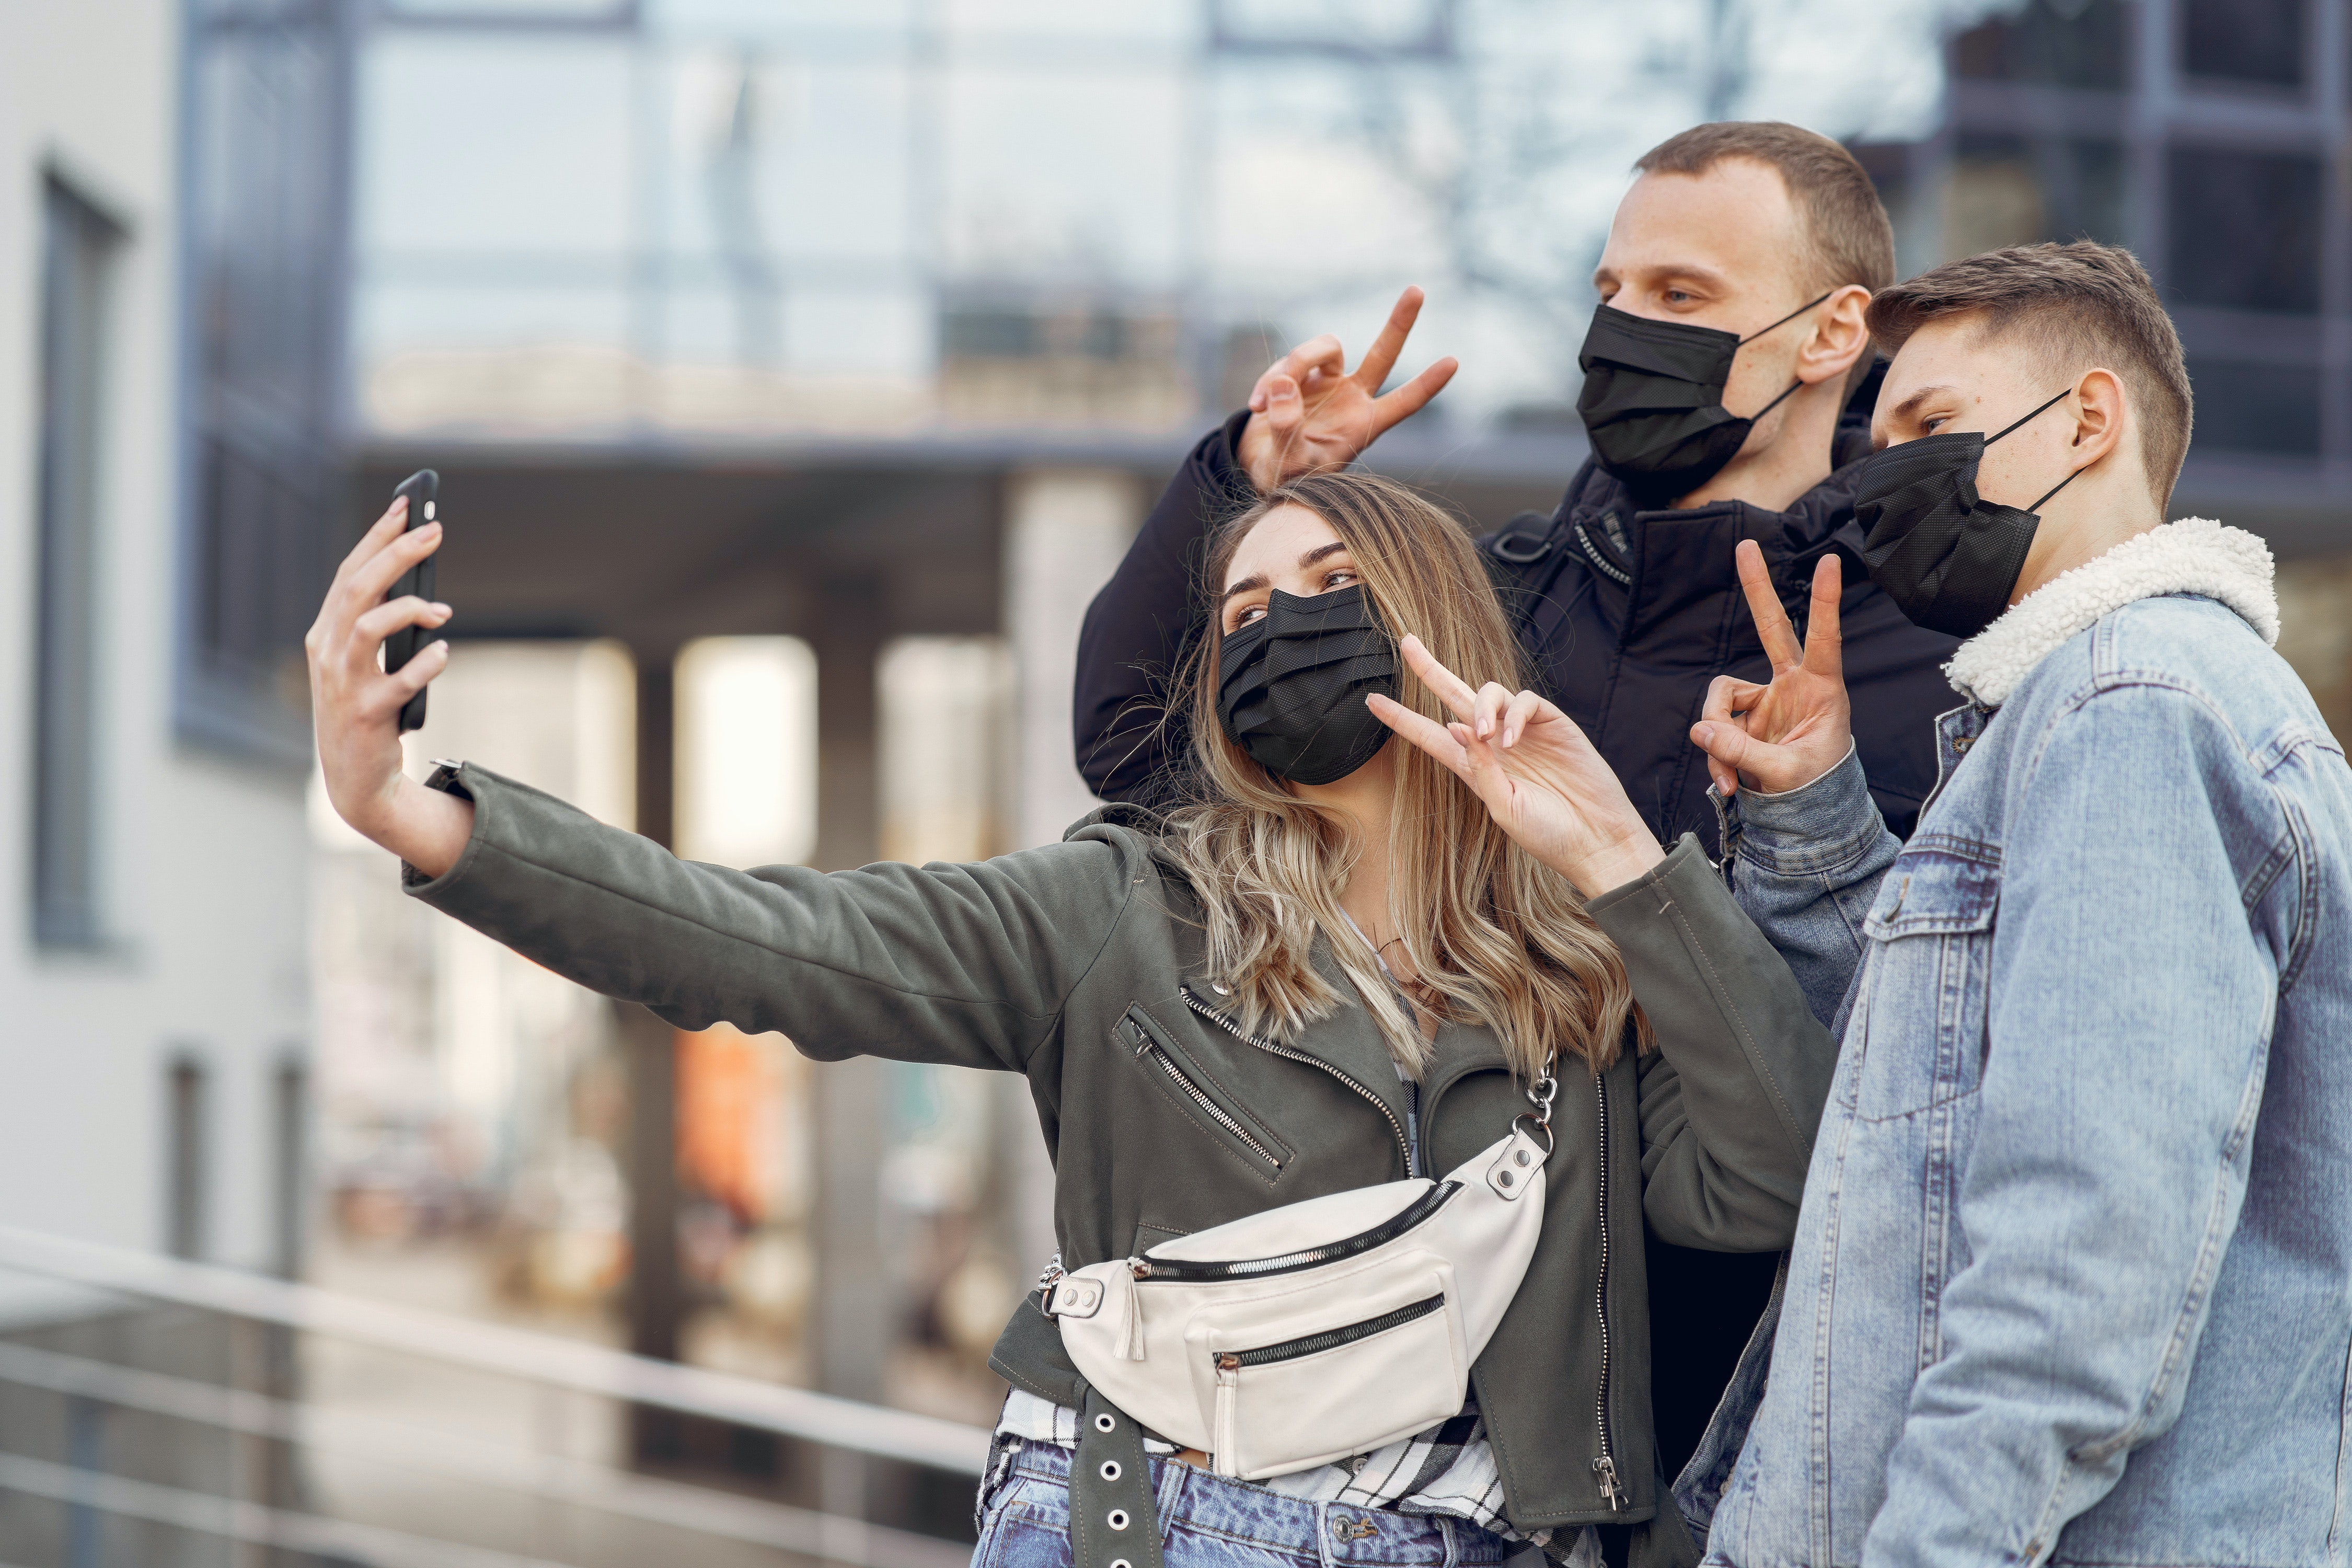 Friends taking a selfie on a smartphone during the pandemic.